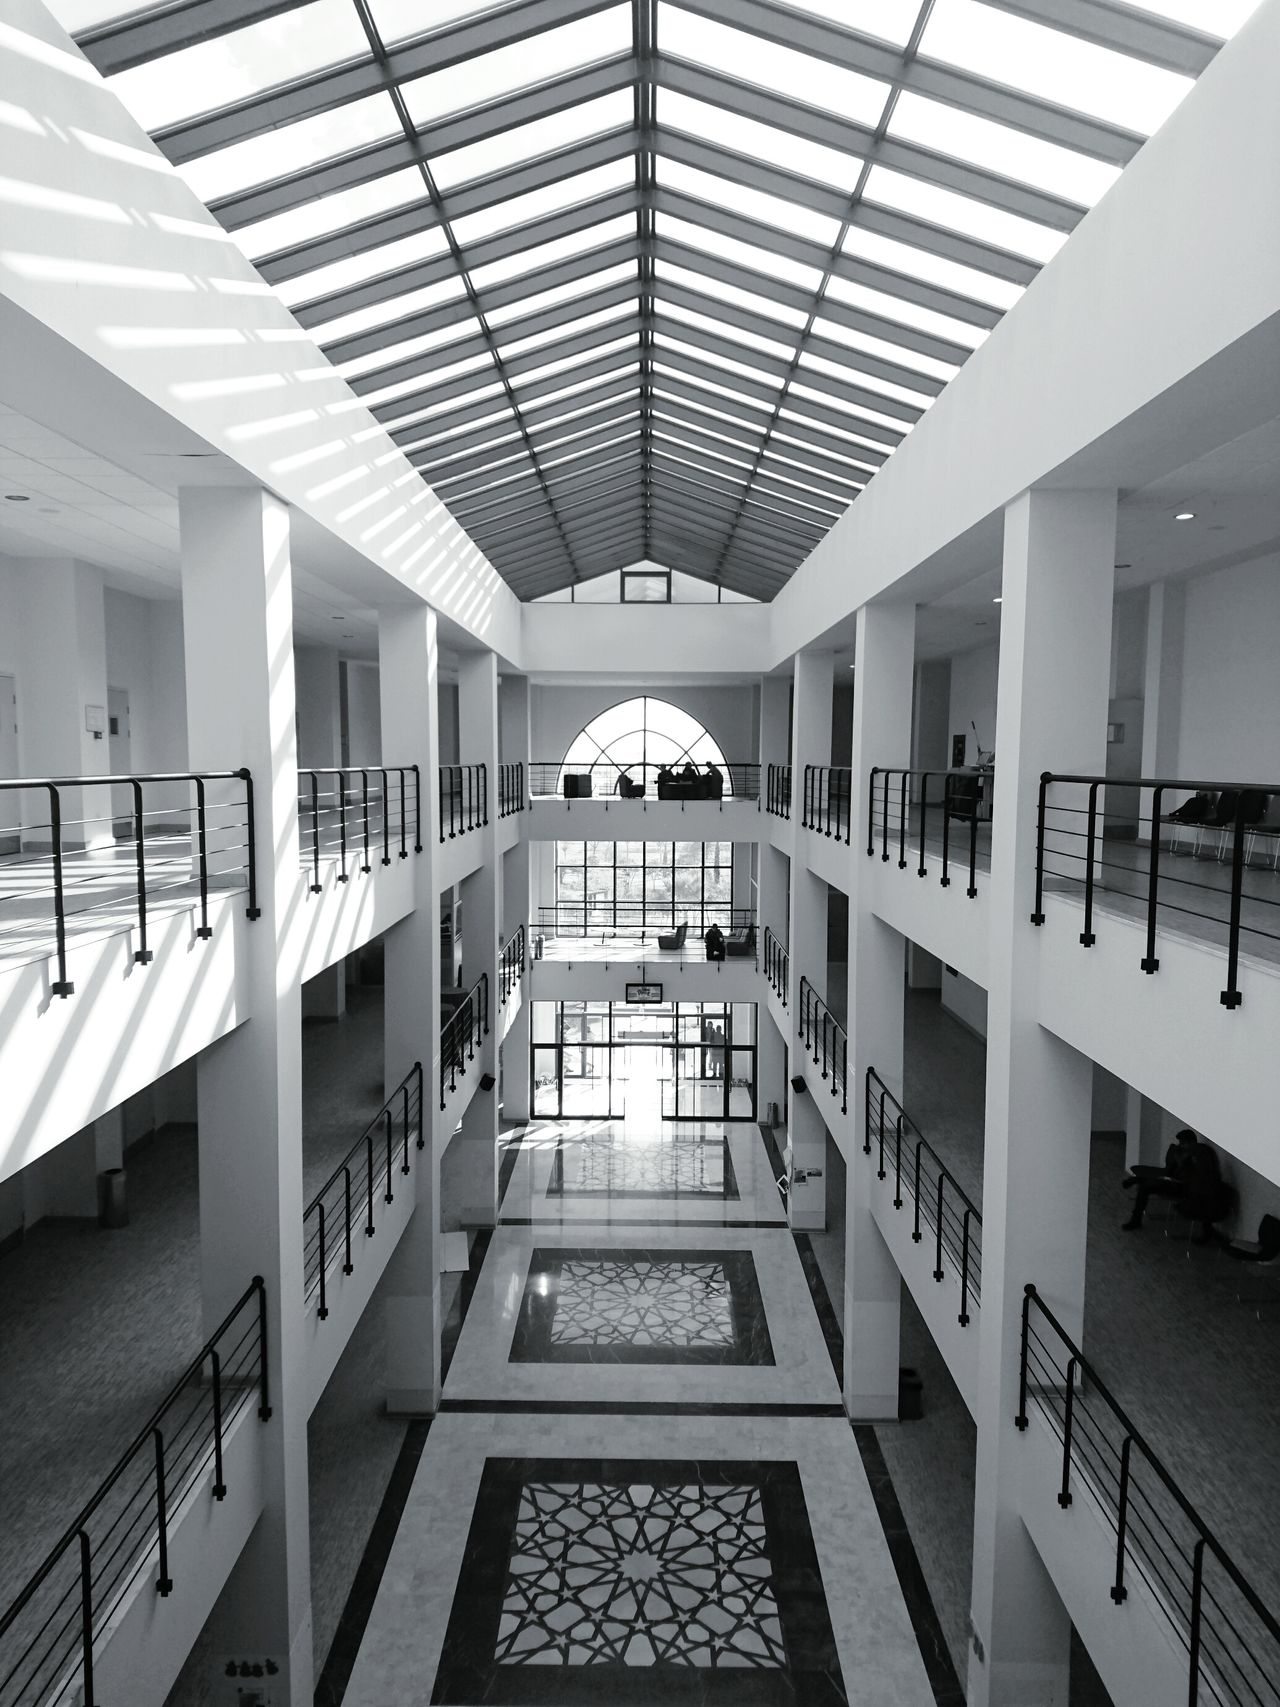 Indoors  No People Day Architecturelovers Walls Buildingstyles Department Point Of View Perspective Symmetry Tube Landscape Skyview Windows University Architectural Detail Architectural Column Architecture_collection Architecture Sunshine Blackandwhite Black And White Black & White Black And White Photography Newtalent EyeEmNewHere